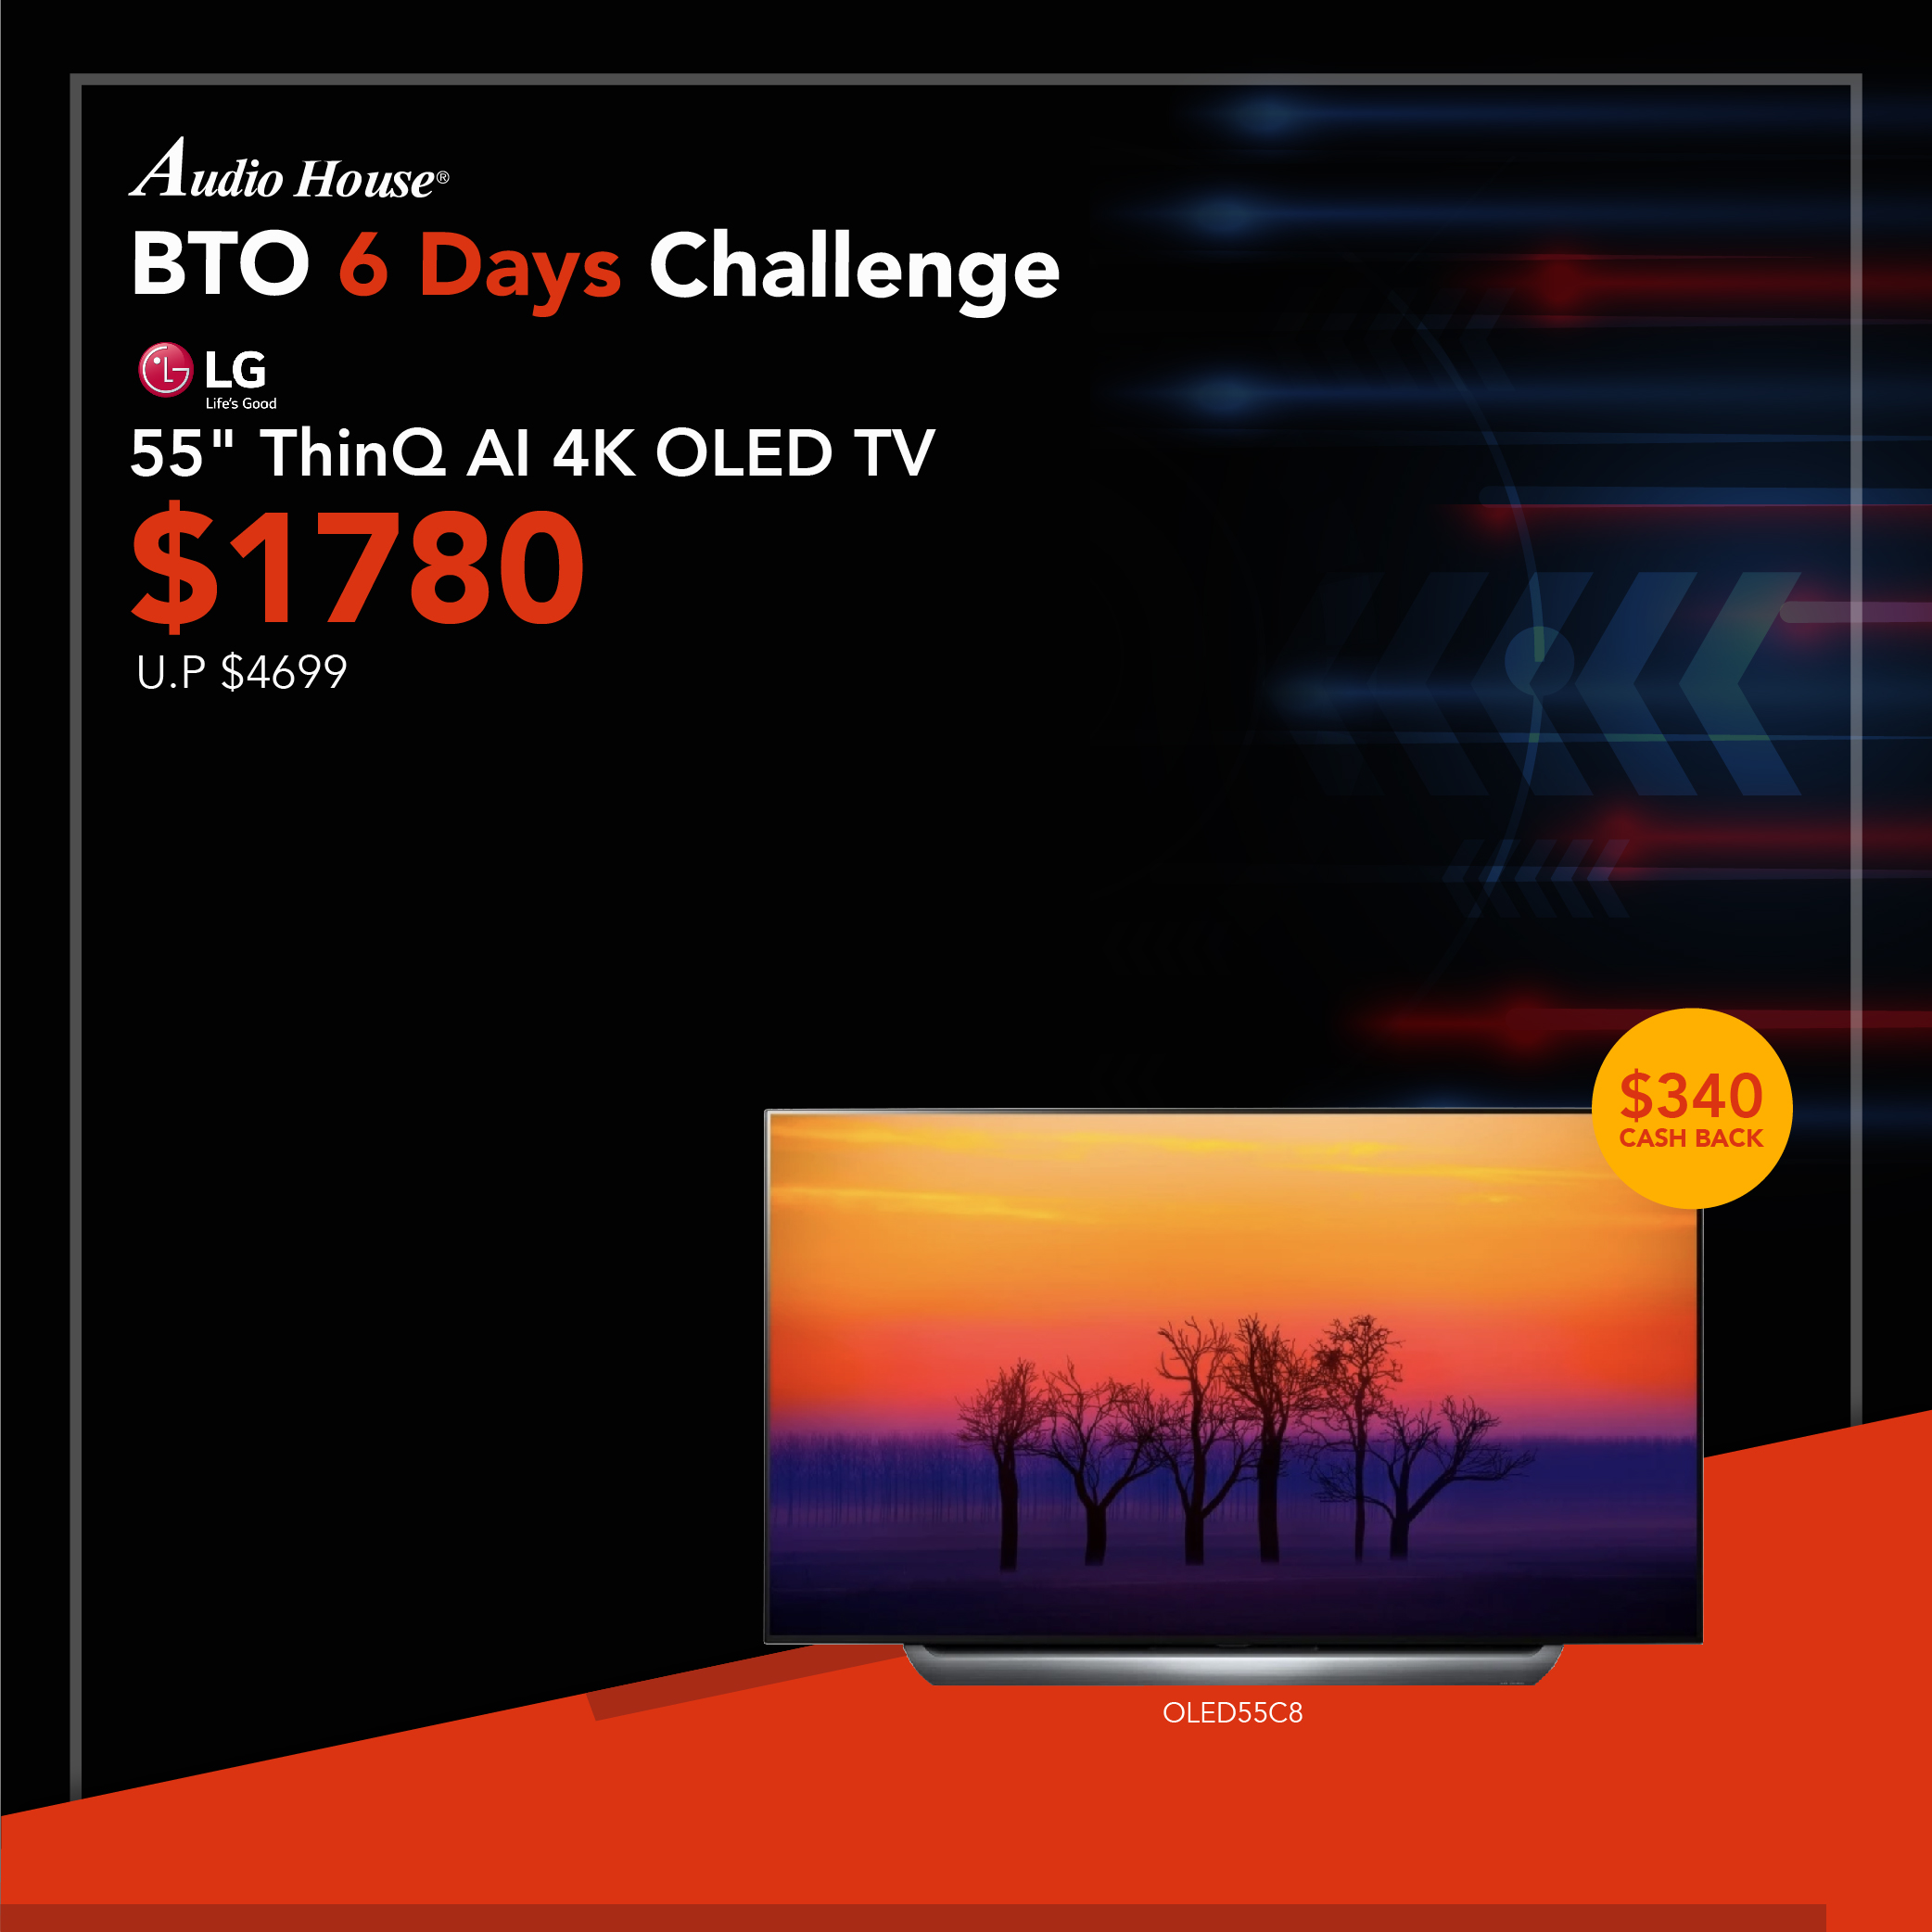 [BTO 6-Day Challenge] Lowest Prices Ever + Exclusive PWP Deals for Only $5! | Why Not Deals 1 & Promotions